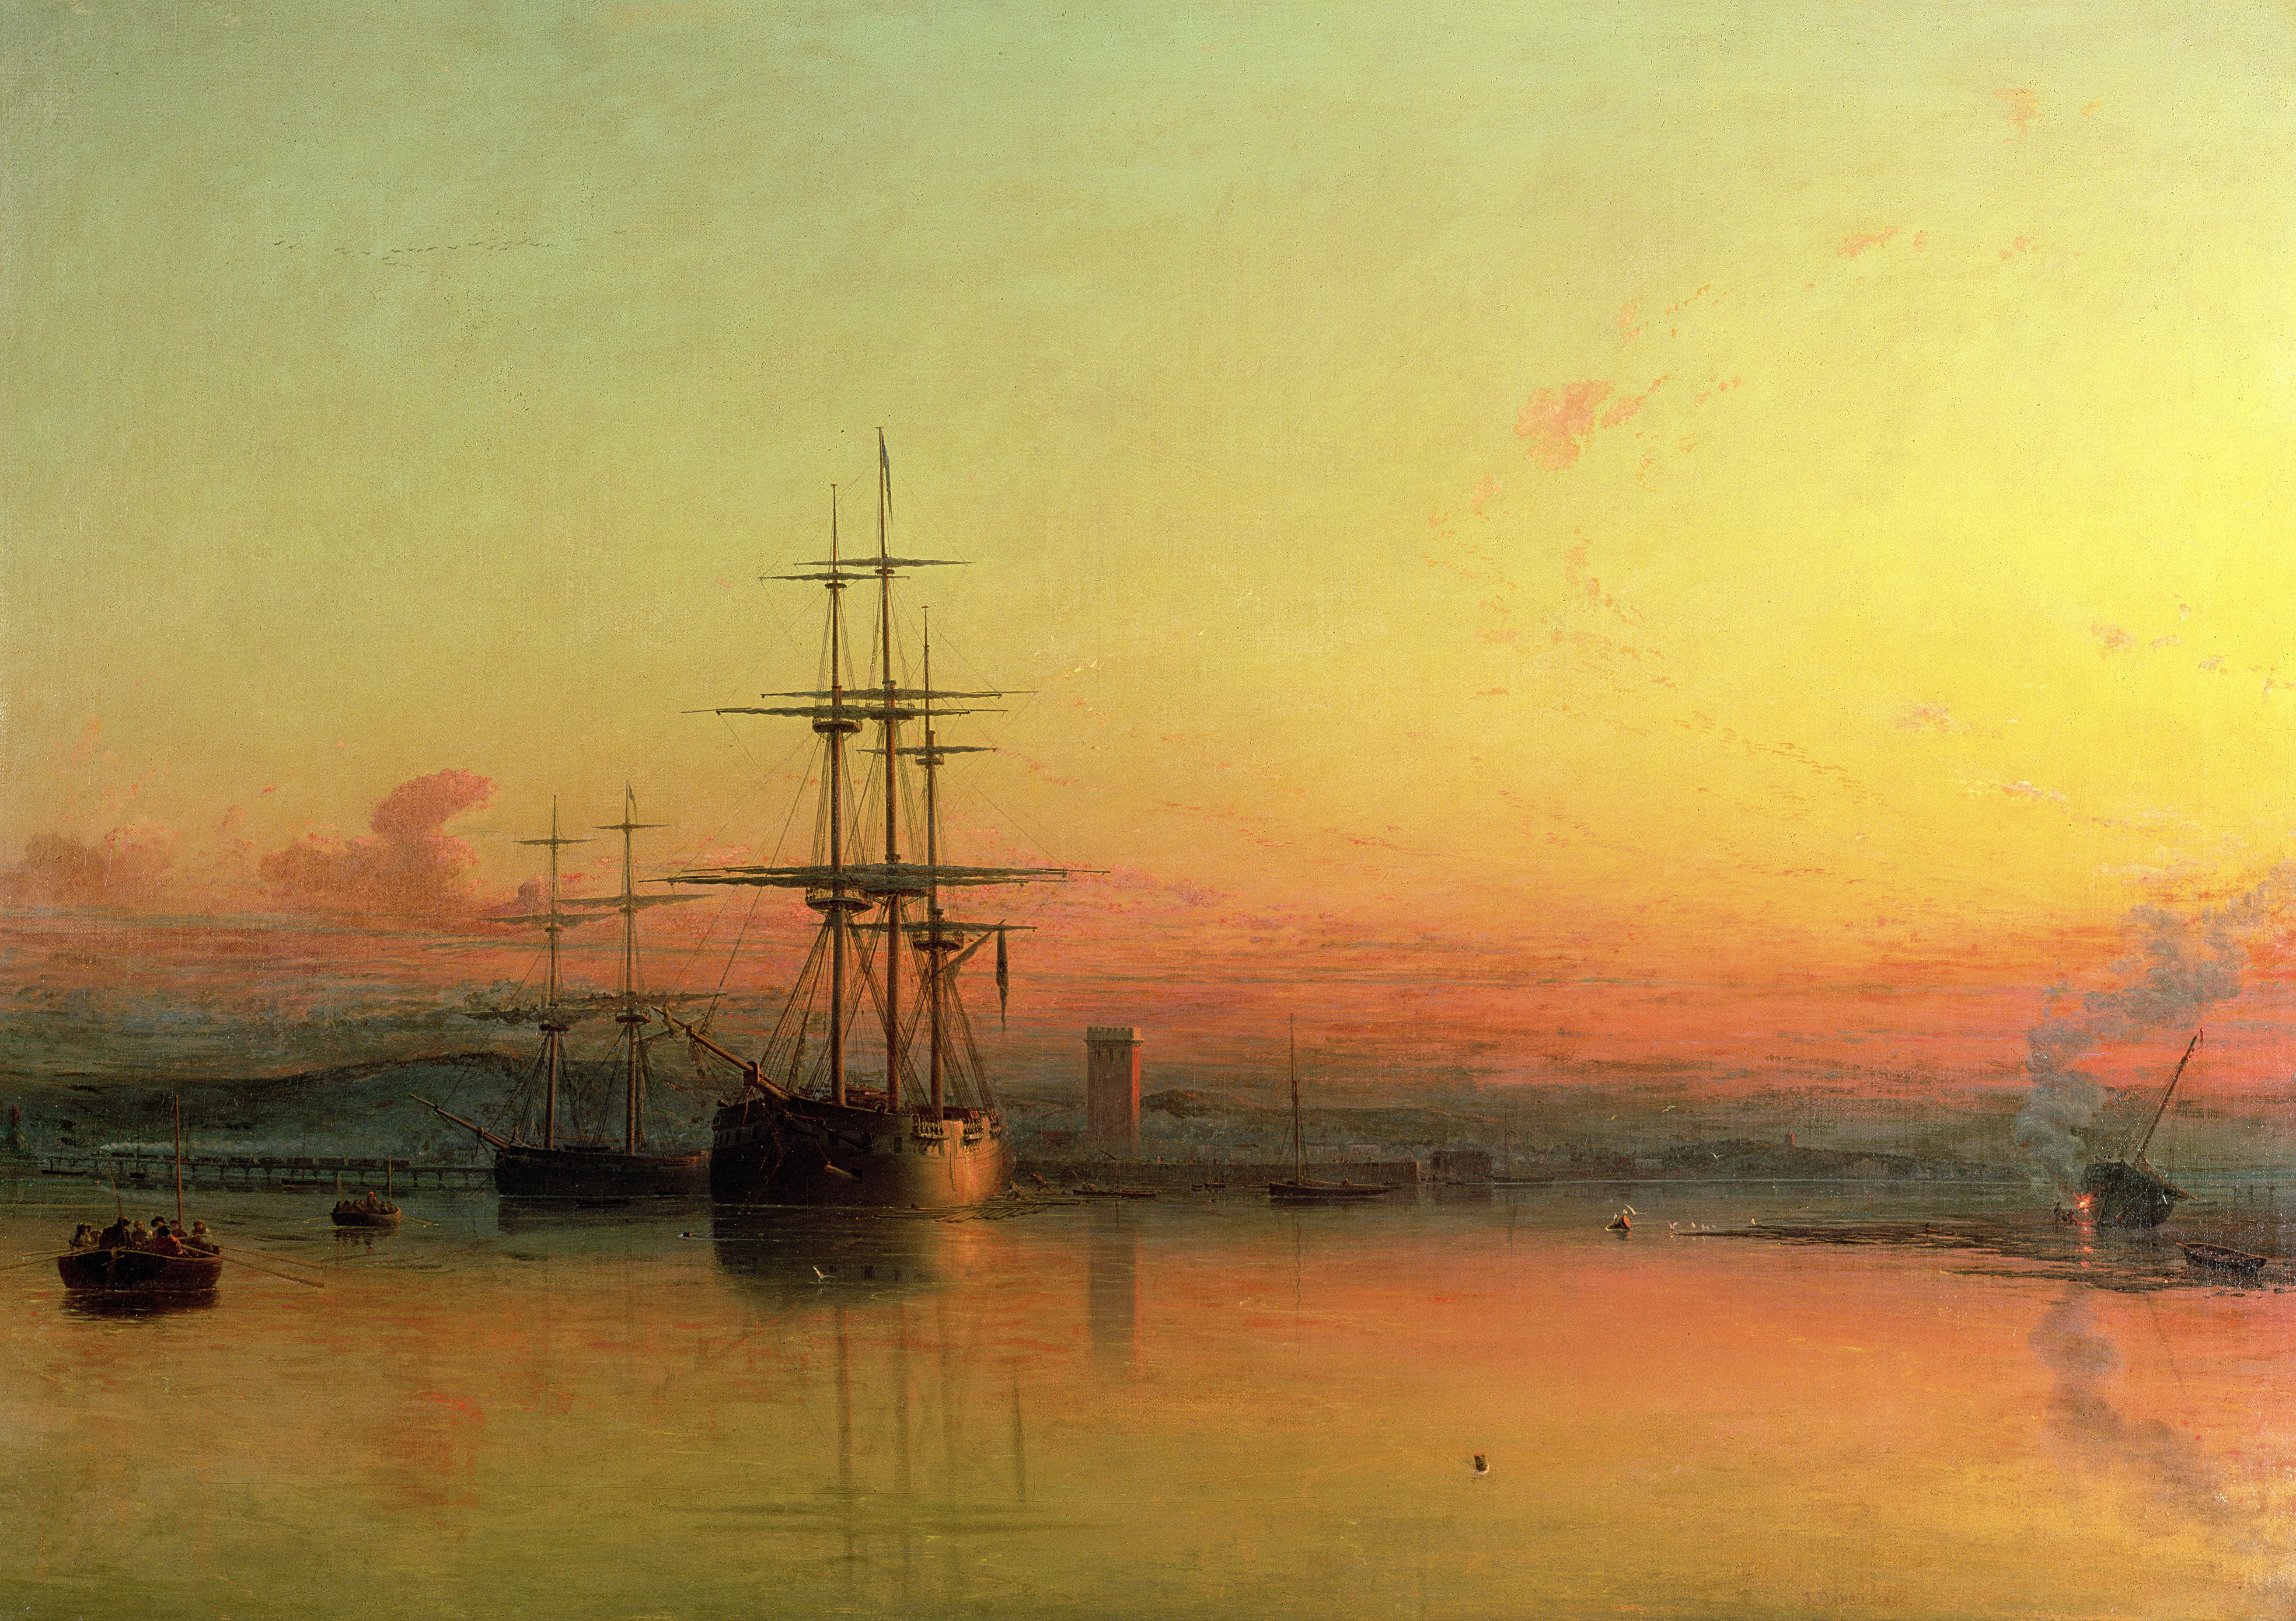 Dead Calm, Sunset at the Bight of Exmouth, Making History gallery